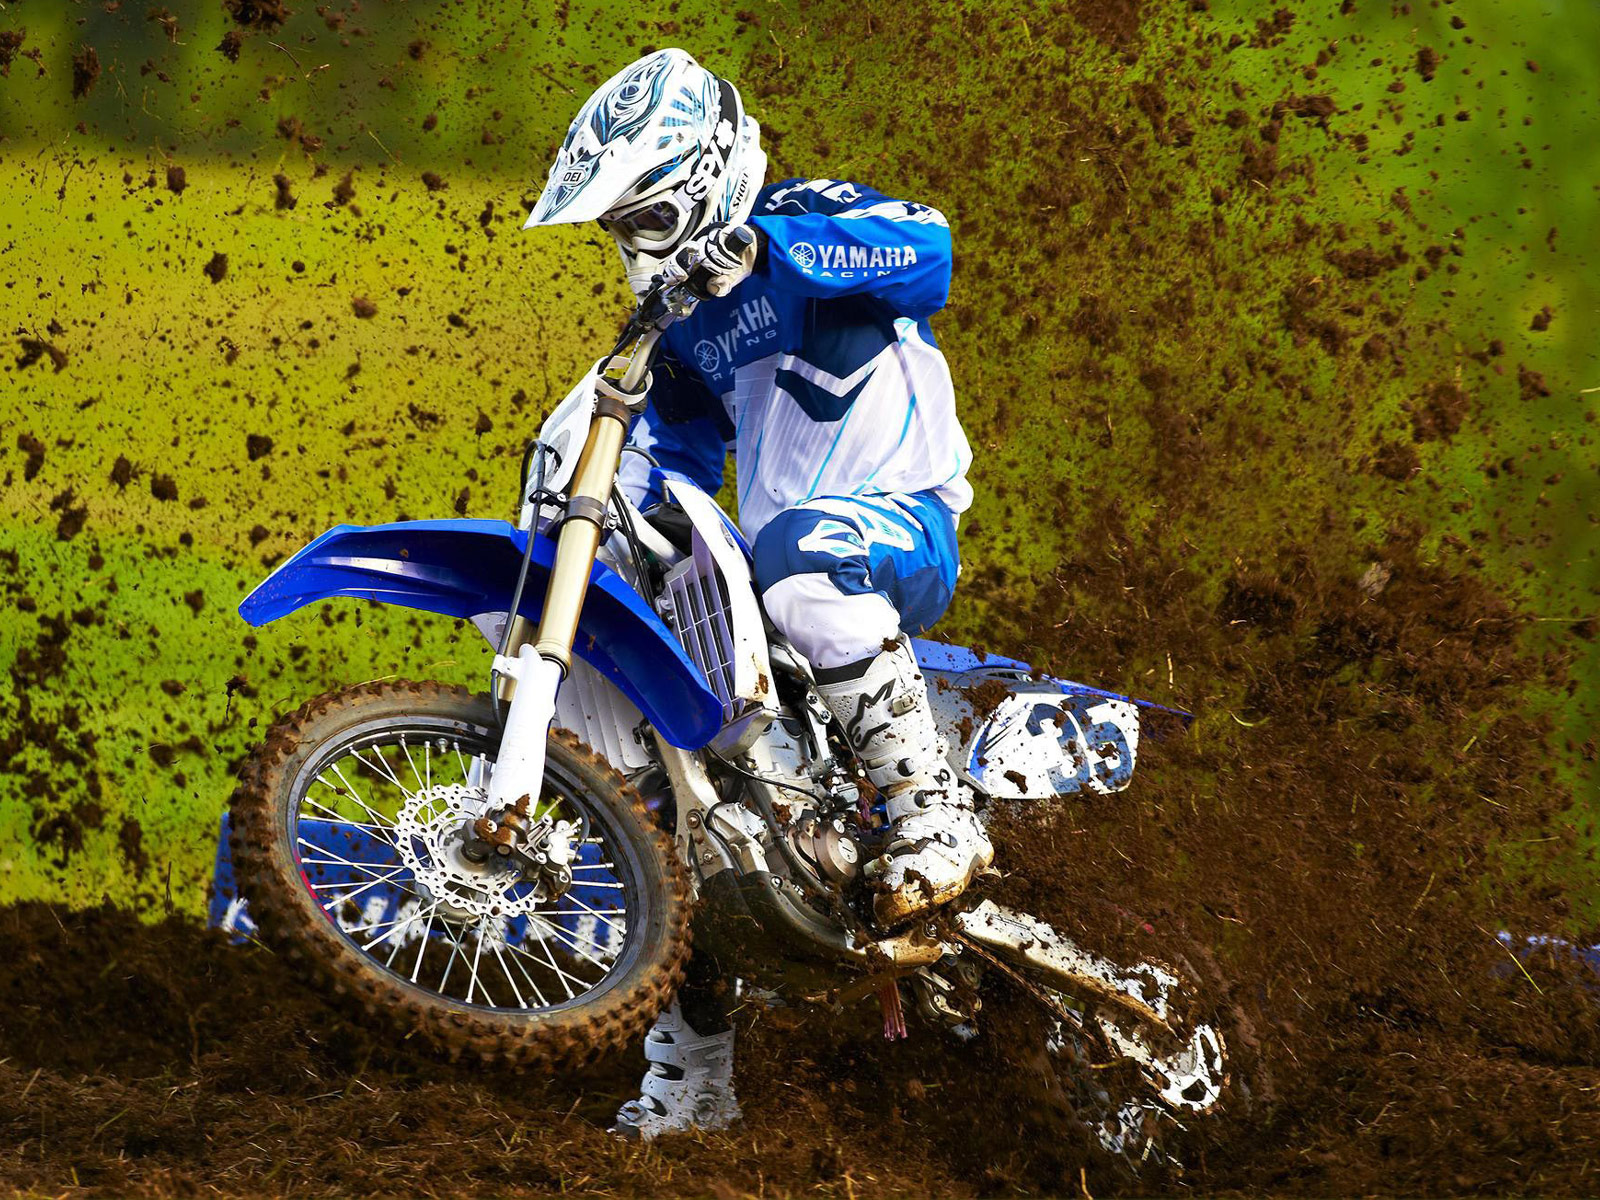 2012 Yamaha Yz250f Accident Lawyer Wallpaper Specifications